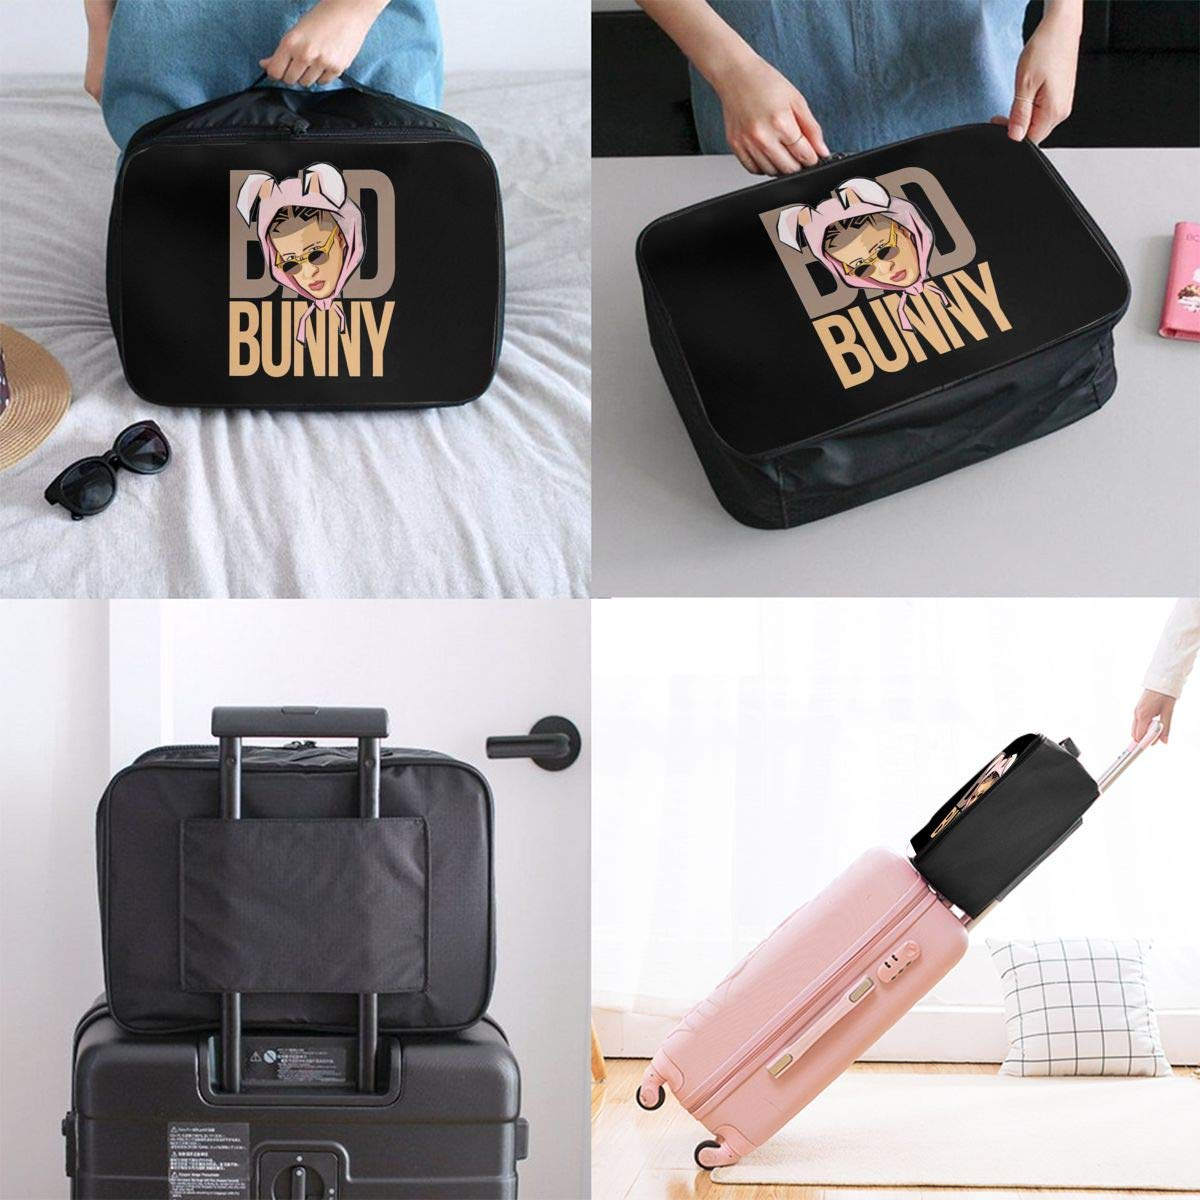 Fretlo Bad-Rabbit-Bunny-Graphic Travel Duffel Bag Waterproof Lightweight Large Capacity Portable Luggage Bag Black